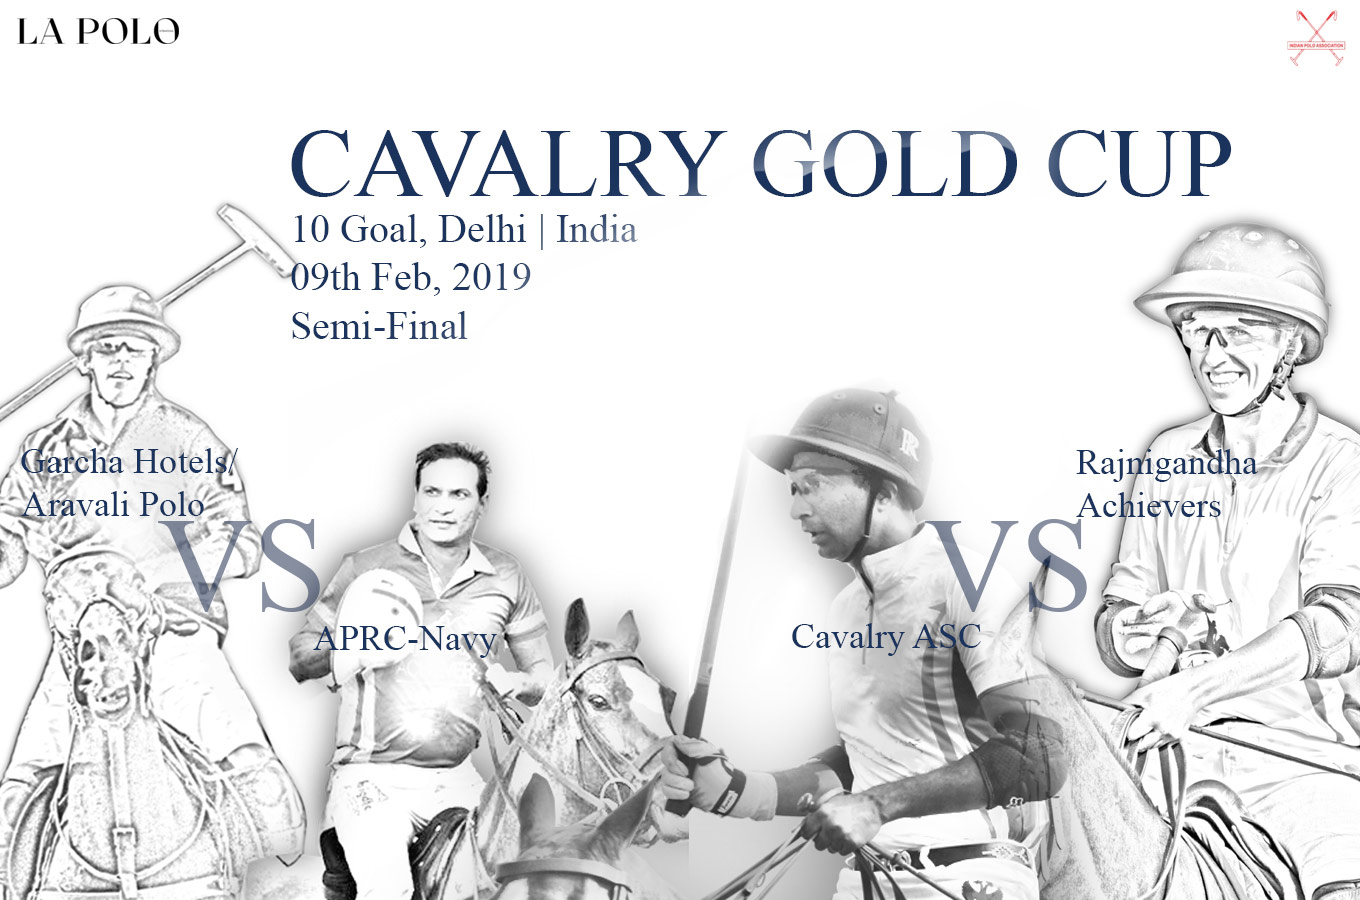 semi-final action of the Cavalry Gold Cup